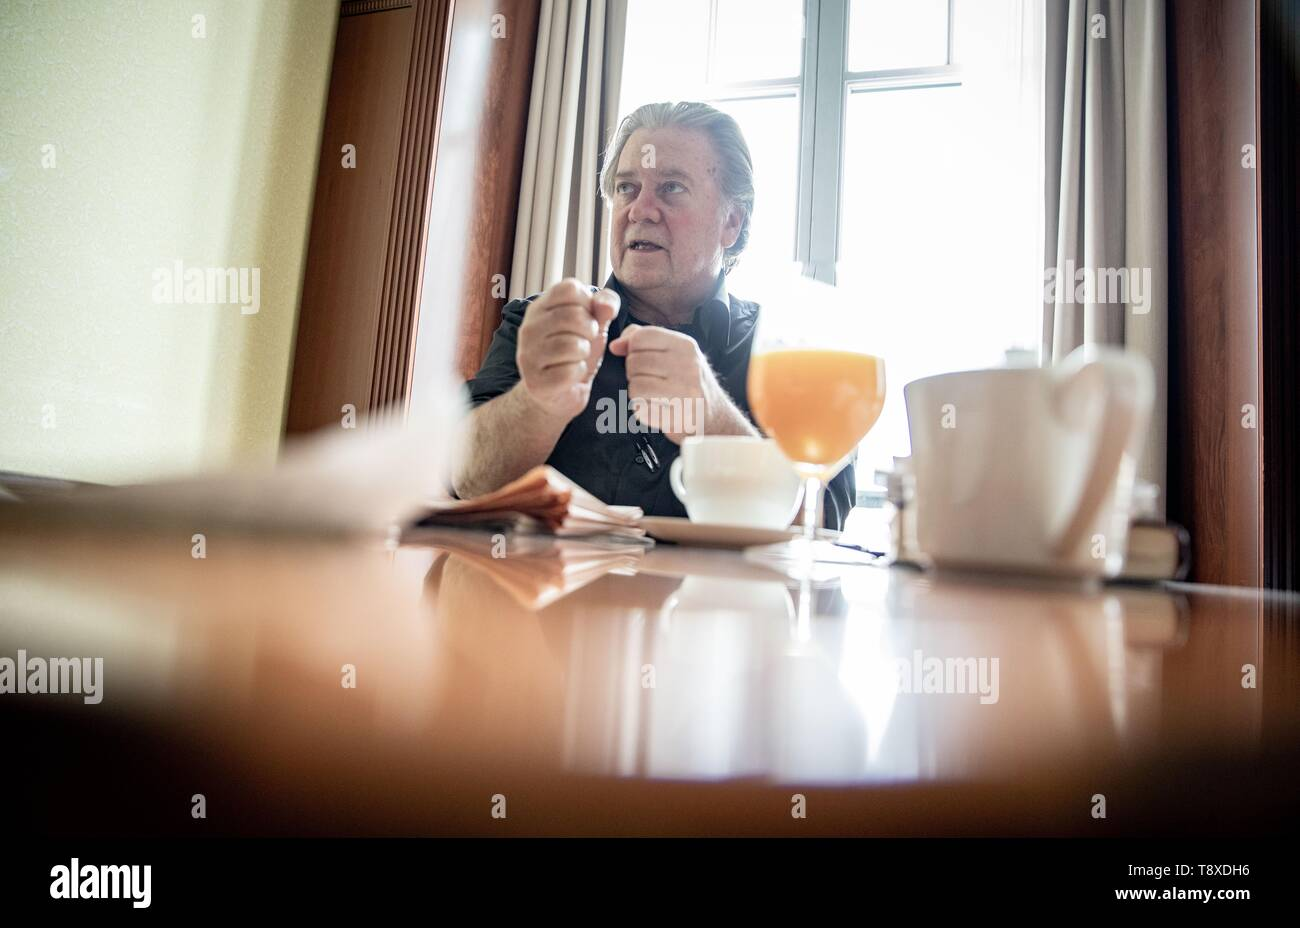 Berlin, Germany. 15th May, 2019. Steve Bannon, former advisor to the US president and US publicist, sits on a chair in a room of the Hotel Adlon during an interview with the German press agency dpa and gestures. Credit: Kay Nietfeld/dpa/Alamy Live News - Stock Image